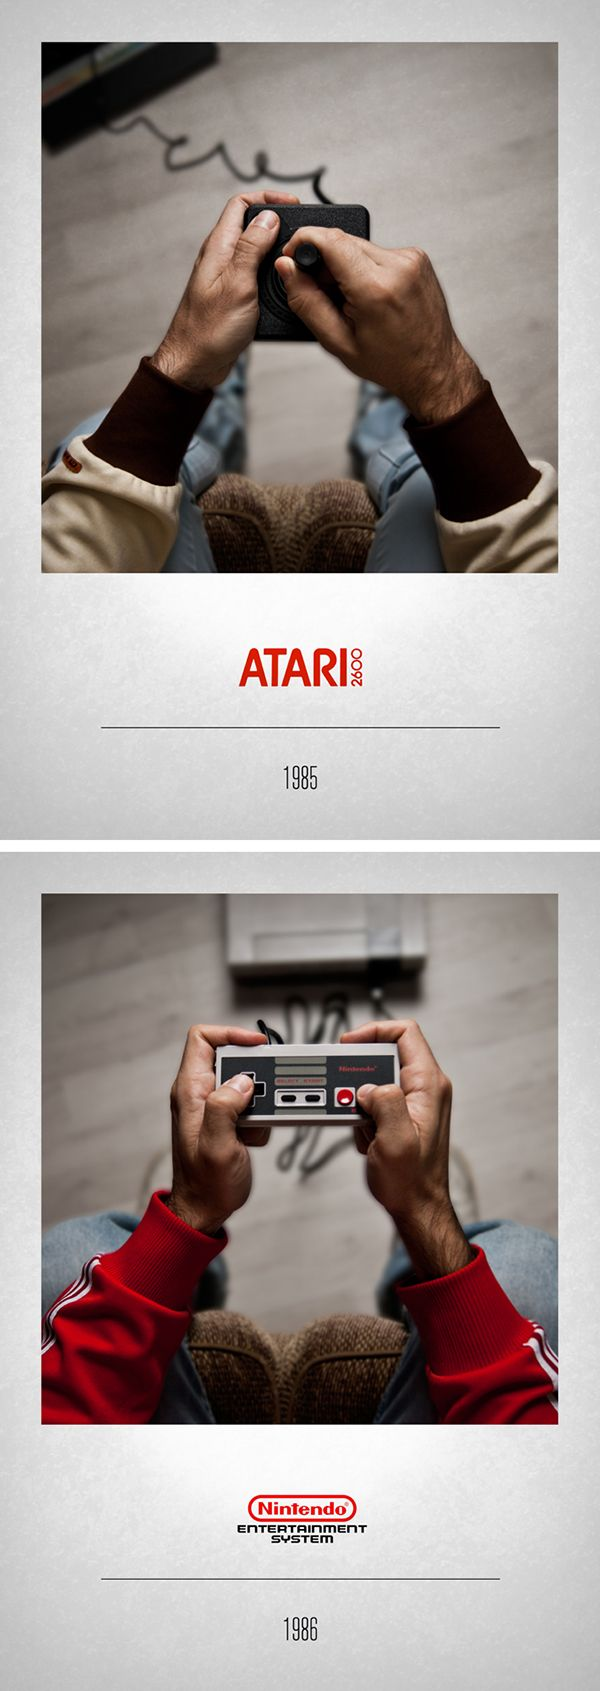 Awesome photography collection of 26 different controllers, showing off the evolution over the years.